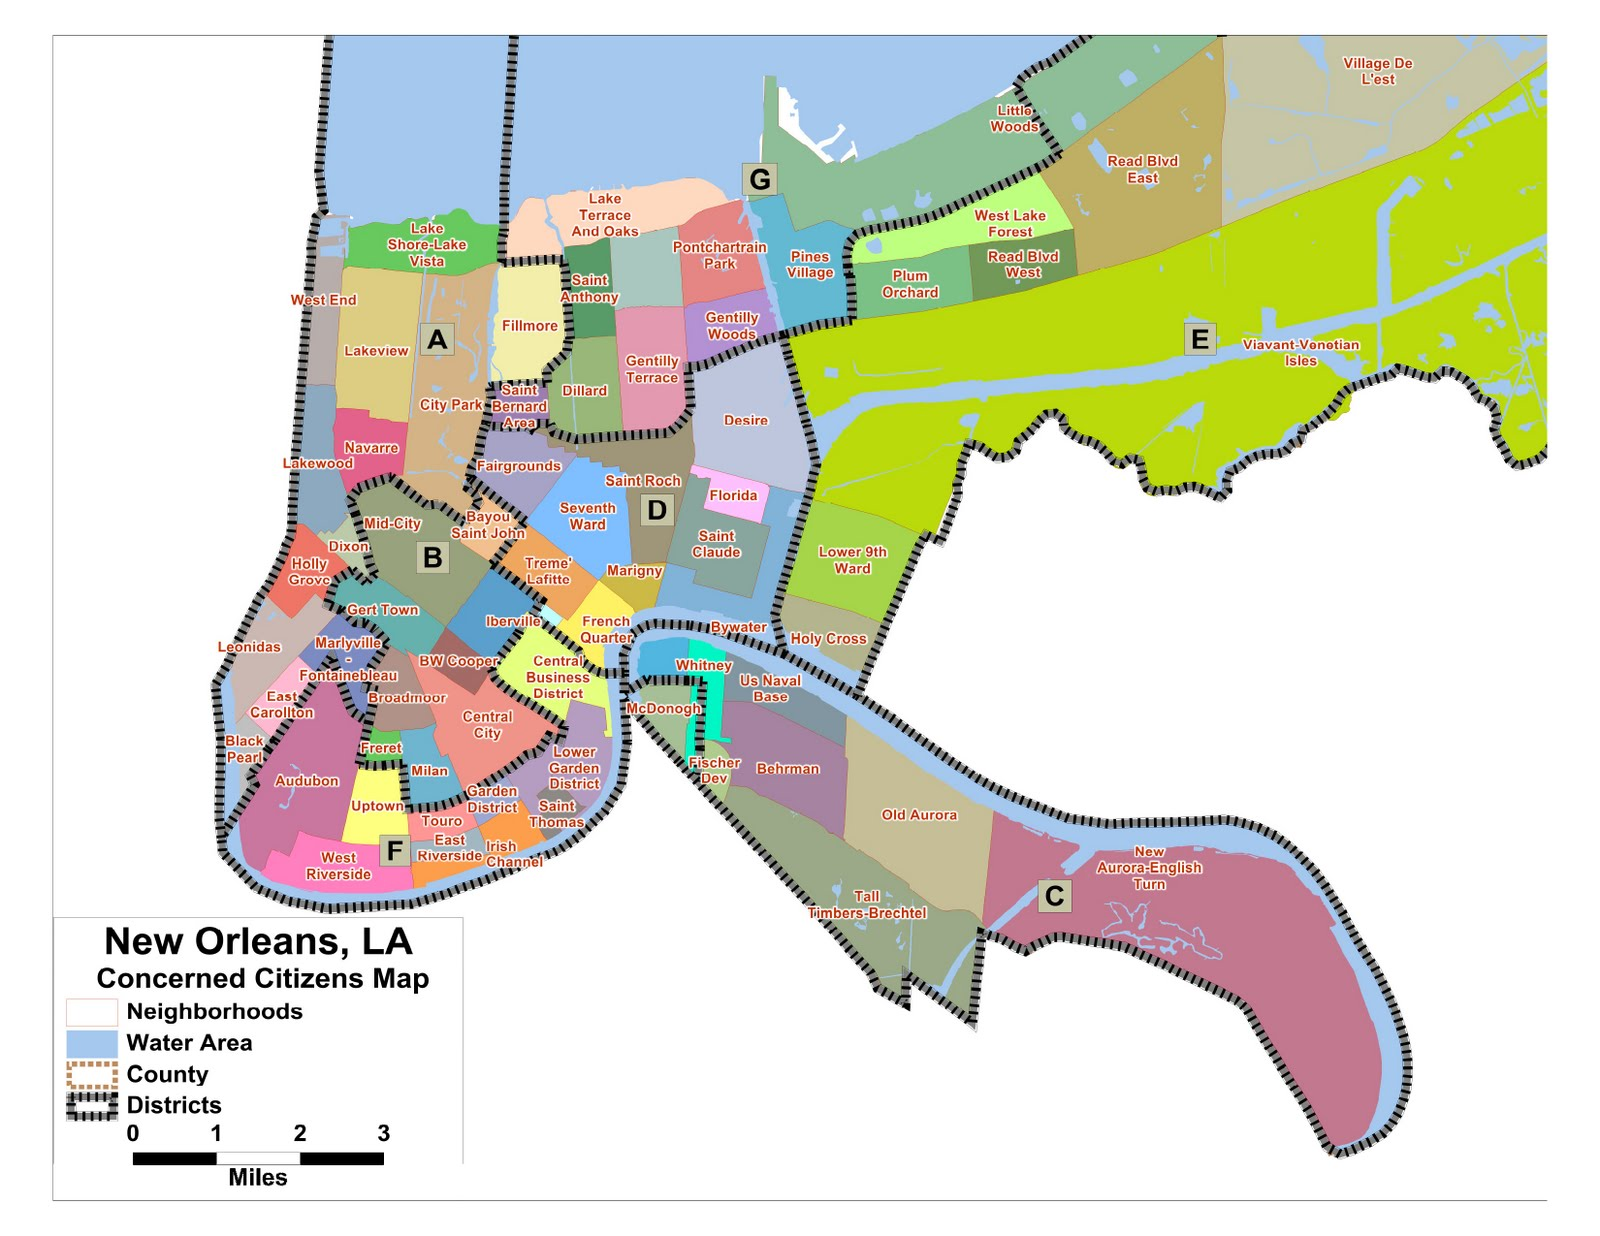 Justice Roars: Concerned Citizens Work ther To Create 7 Single ... on map of st. clair county alabama, map downtown new orleans, new orleans tourist districts, new orleans police districts, map of alaska districts, map of baghdad districts, new orleans city council districts, map of tacoma districts, map la districts, map of jefferson parish districts, new orleans voting districts, nopd police districts, map of fema districts, map of tianjin districts, map of philly districts, map of districts in los angeles, map of doddridge county districts, map of louisiana, map of tn school districts, map of anchorage districts,